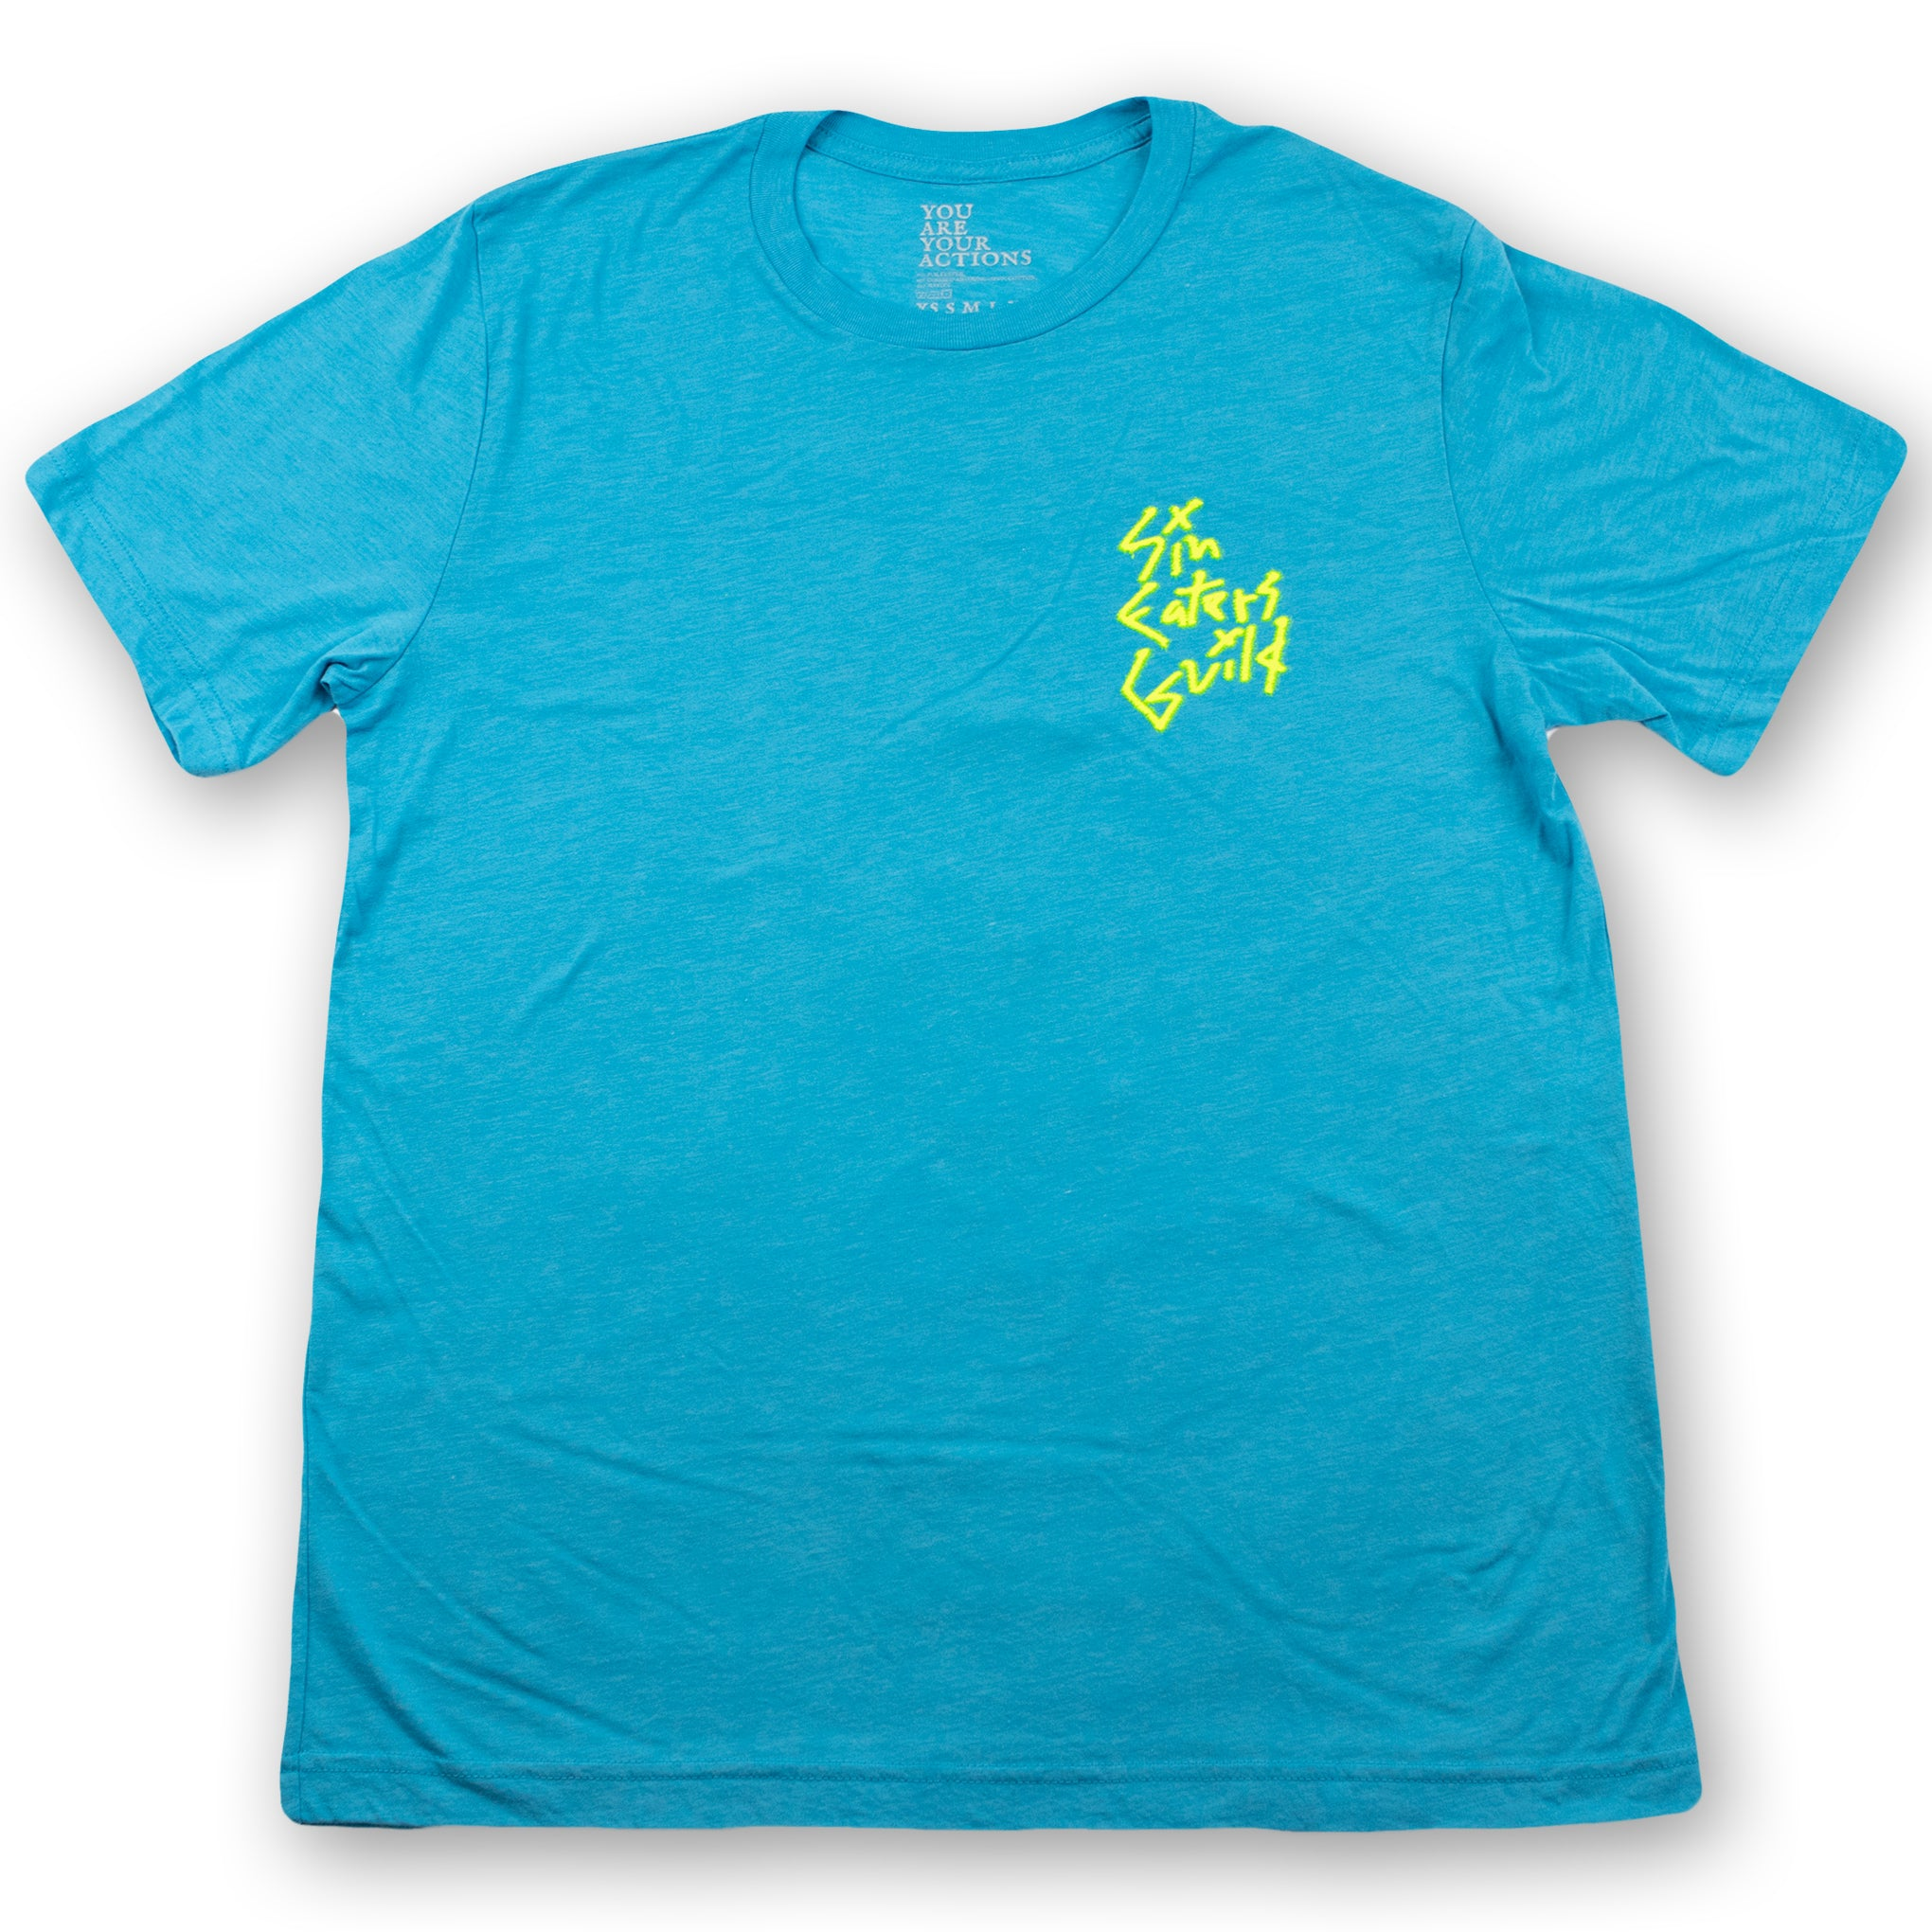 Aqua Graff Hanged Man T-Shirt